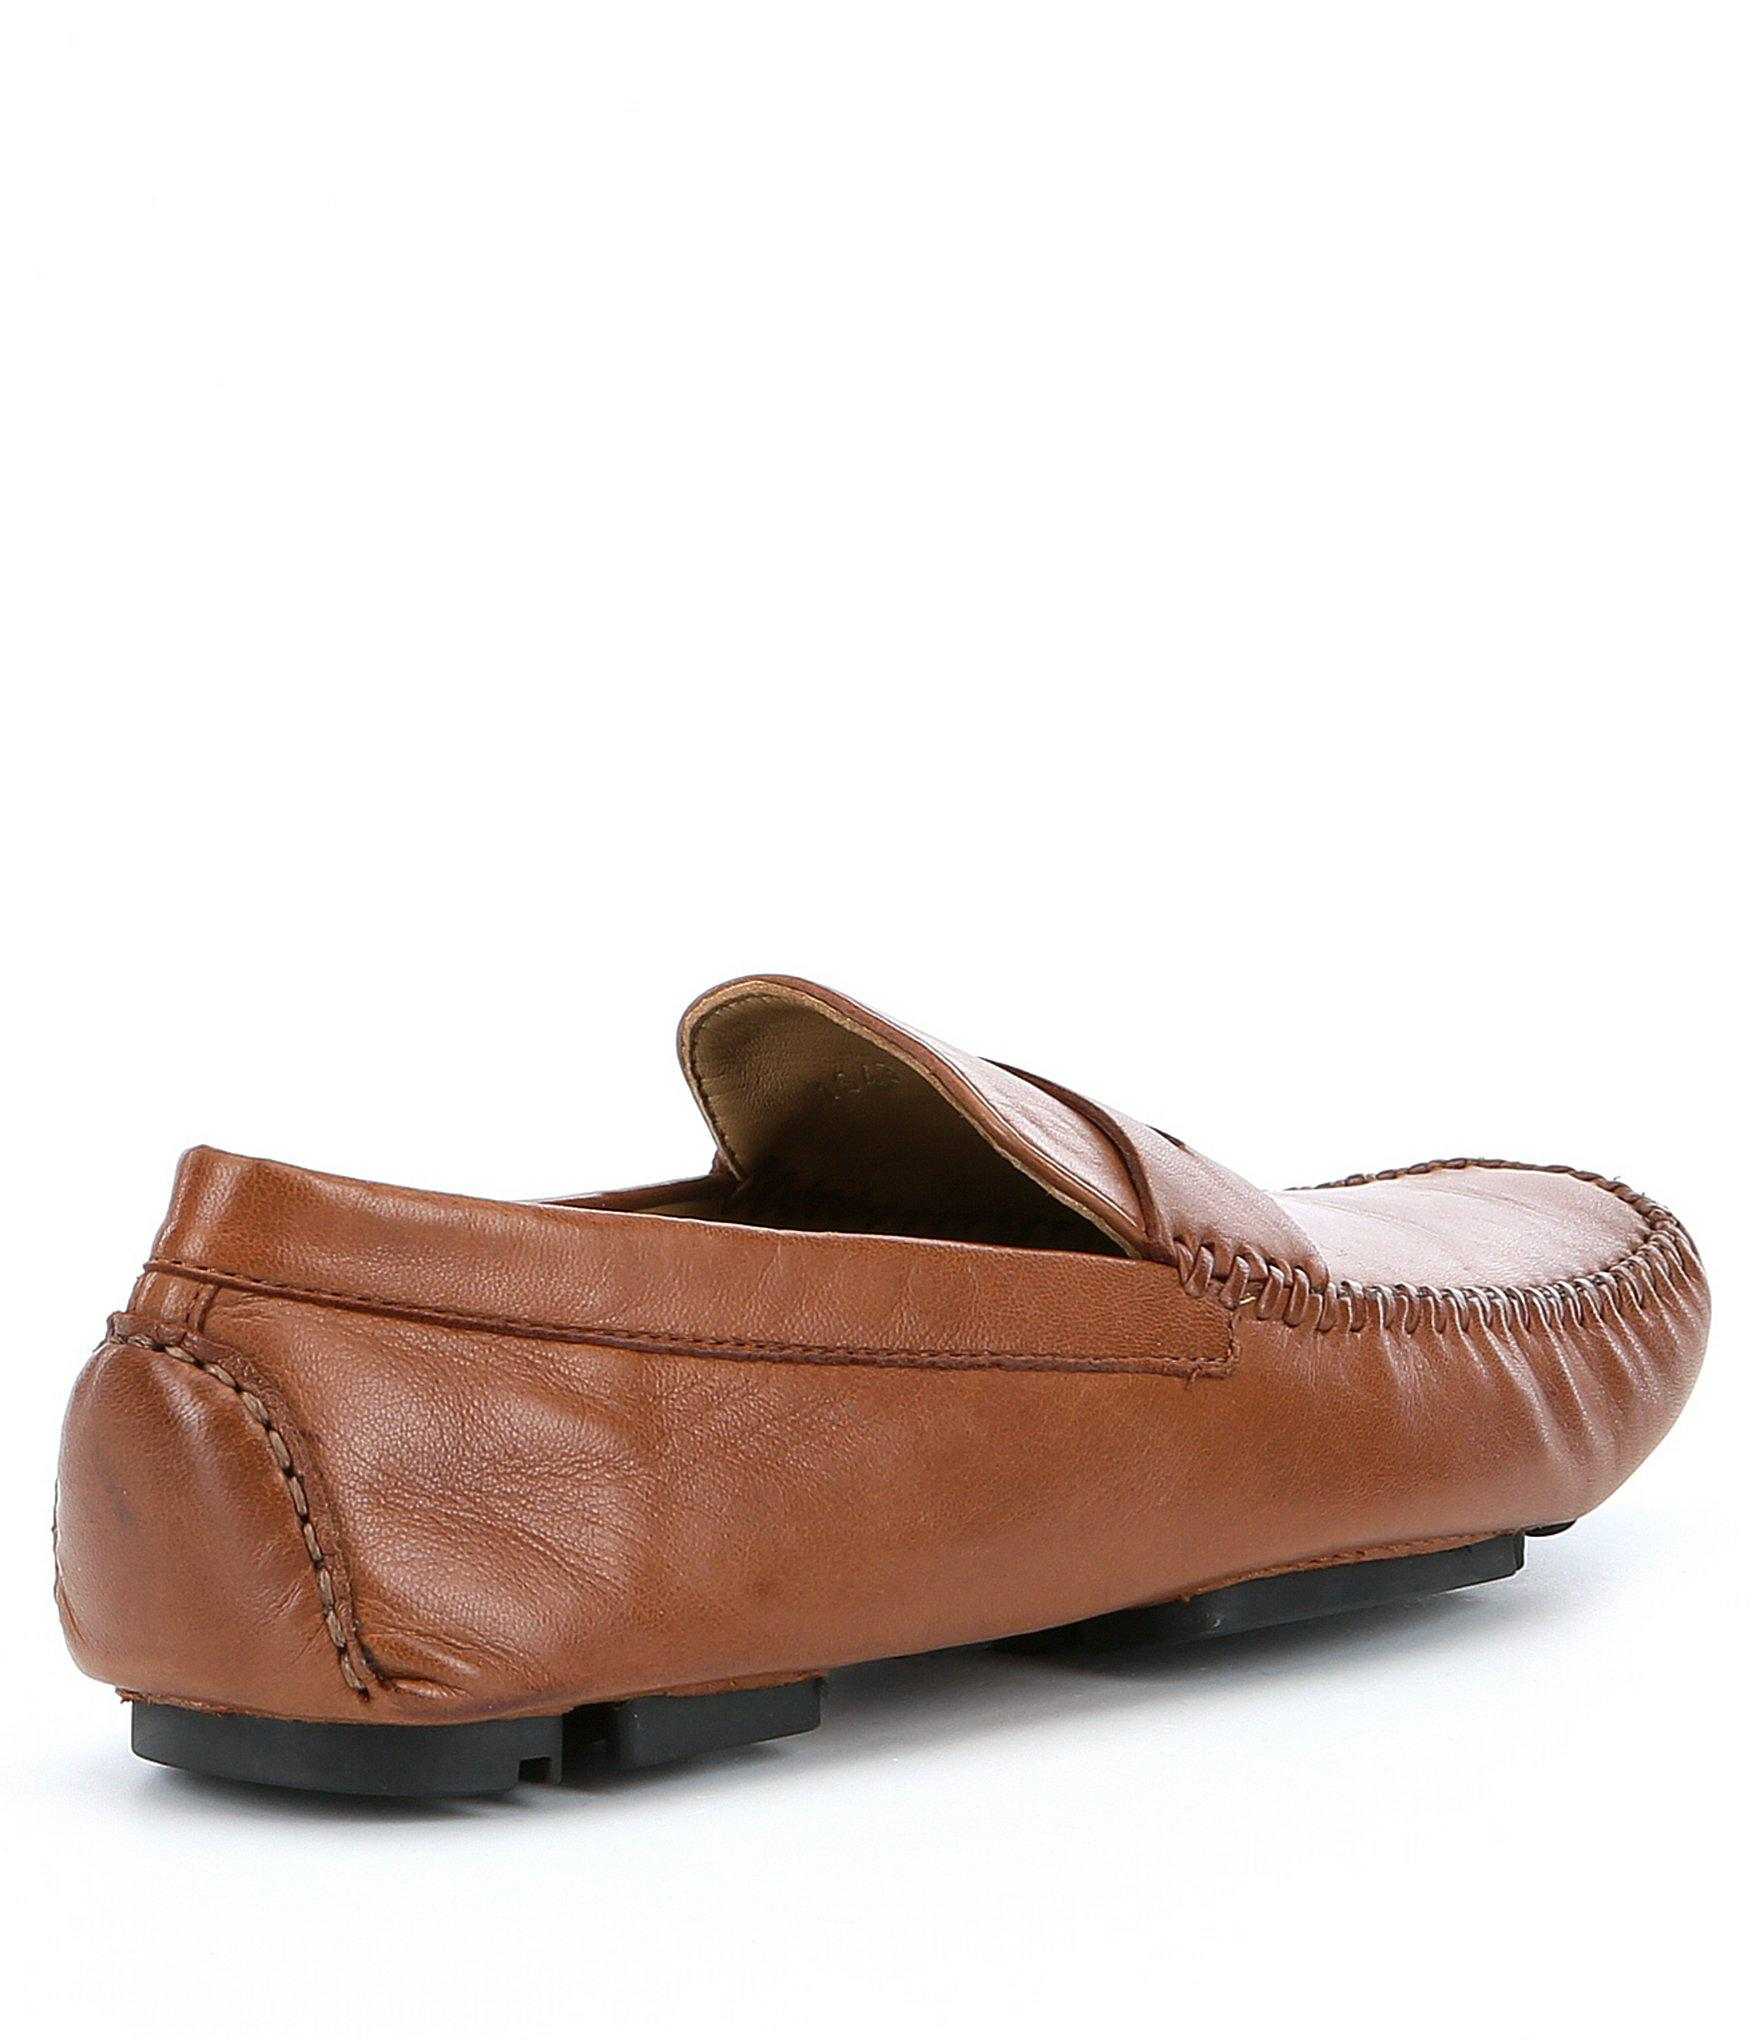 30782ec979b Lyst - Robert Zur Men ́s Sven Leather Penny Loafers in Brown for Men